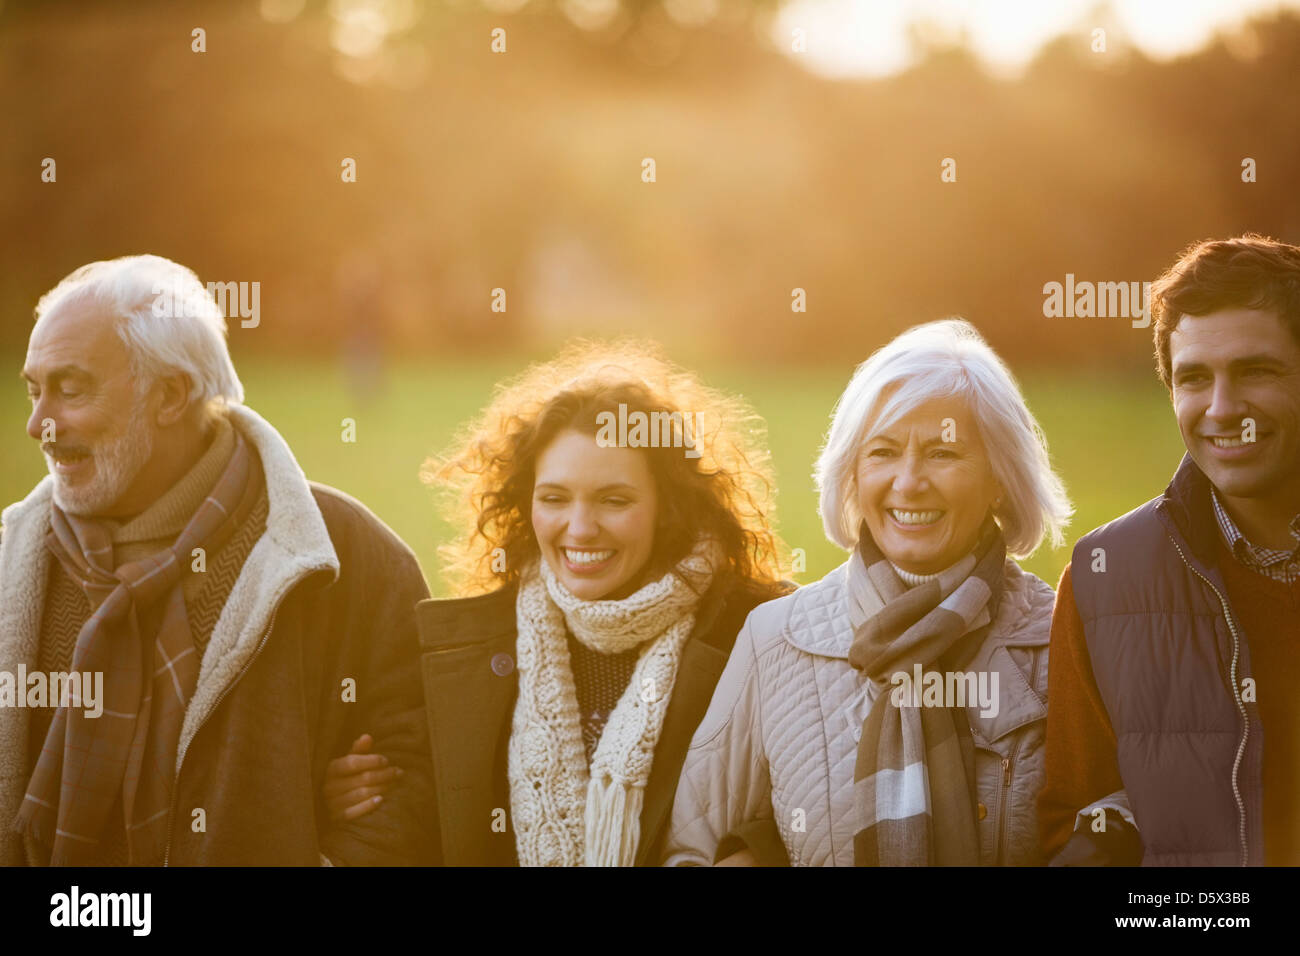 Family walking together in park - Stock Image